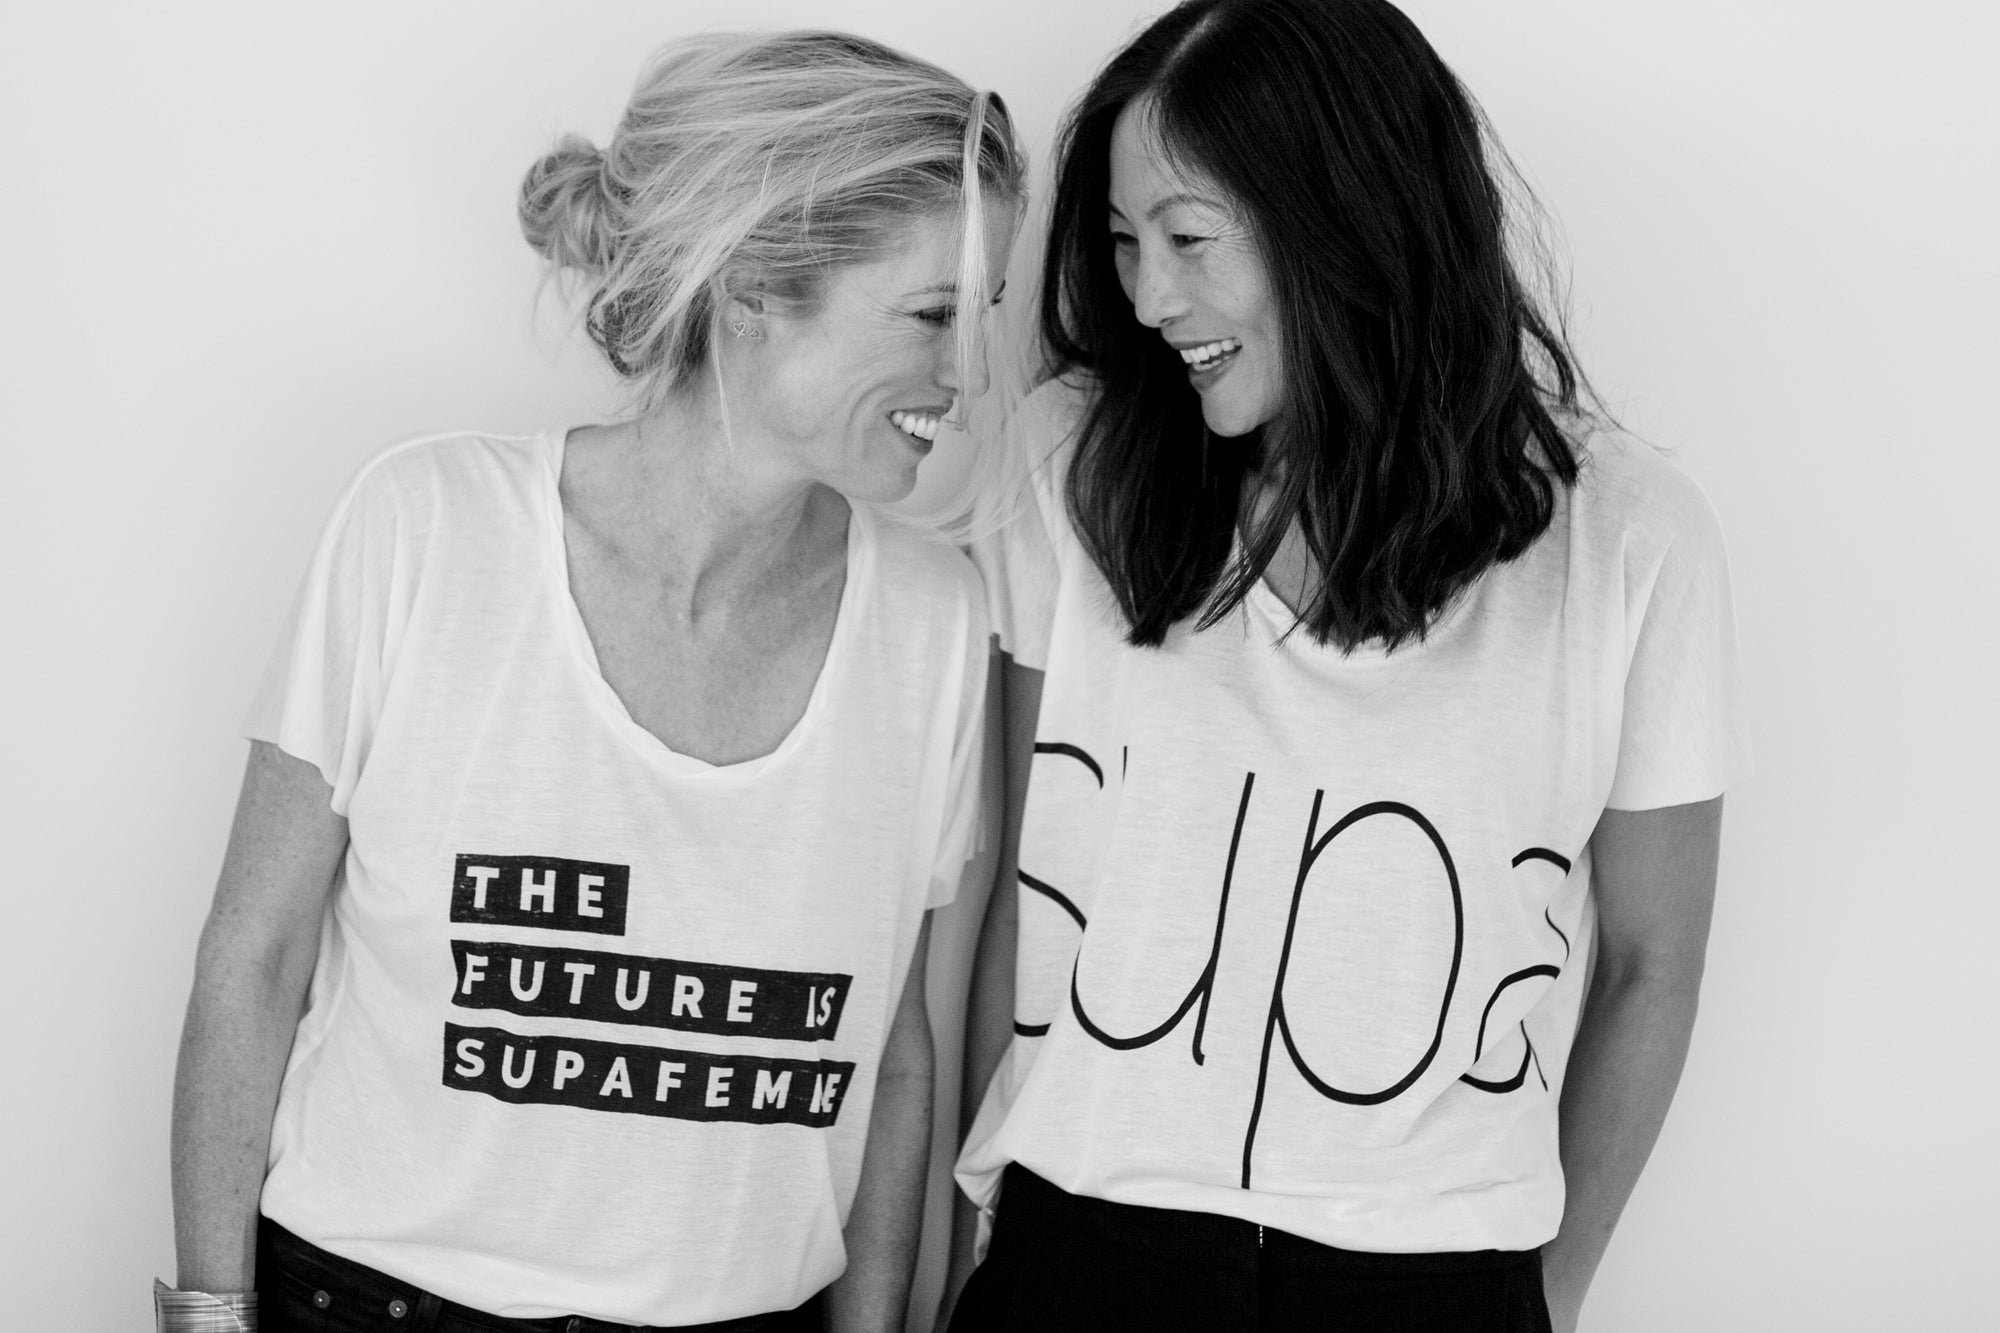 The Future is Supafemme tee shirt made in cotton